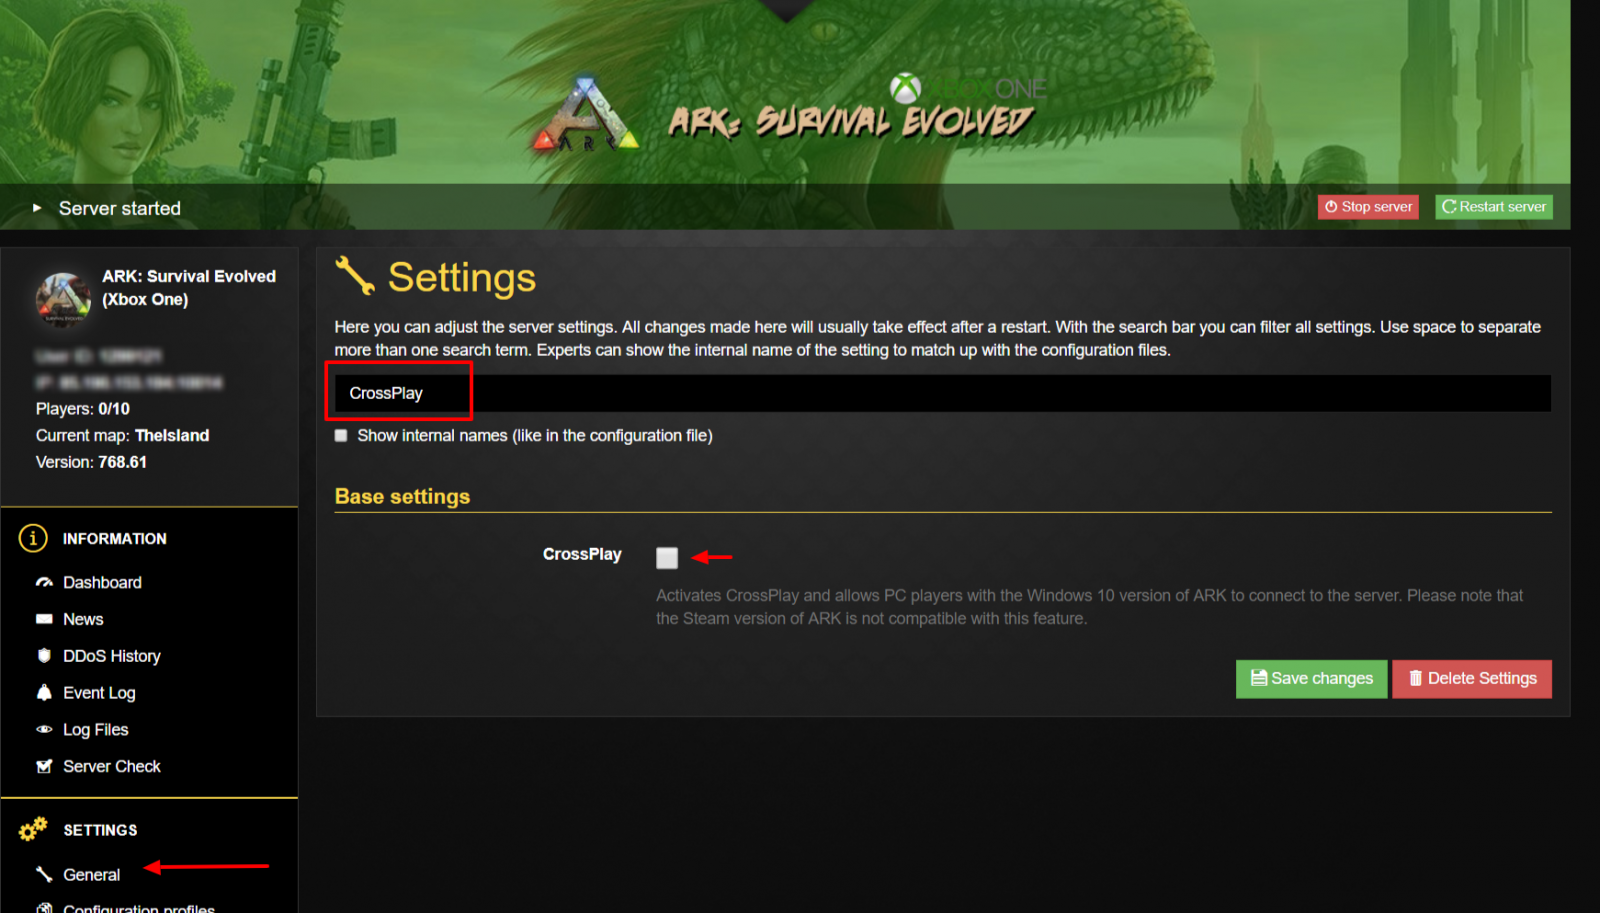 ARK: Survival Evolved, Available Now on Windows 10 with